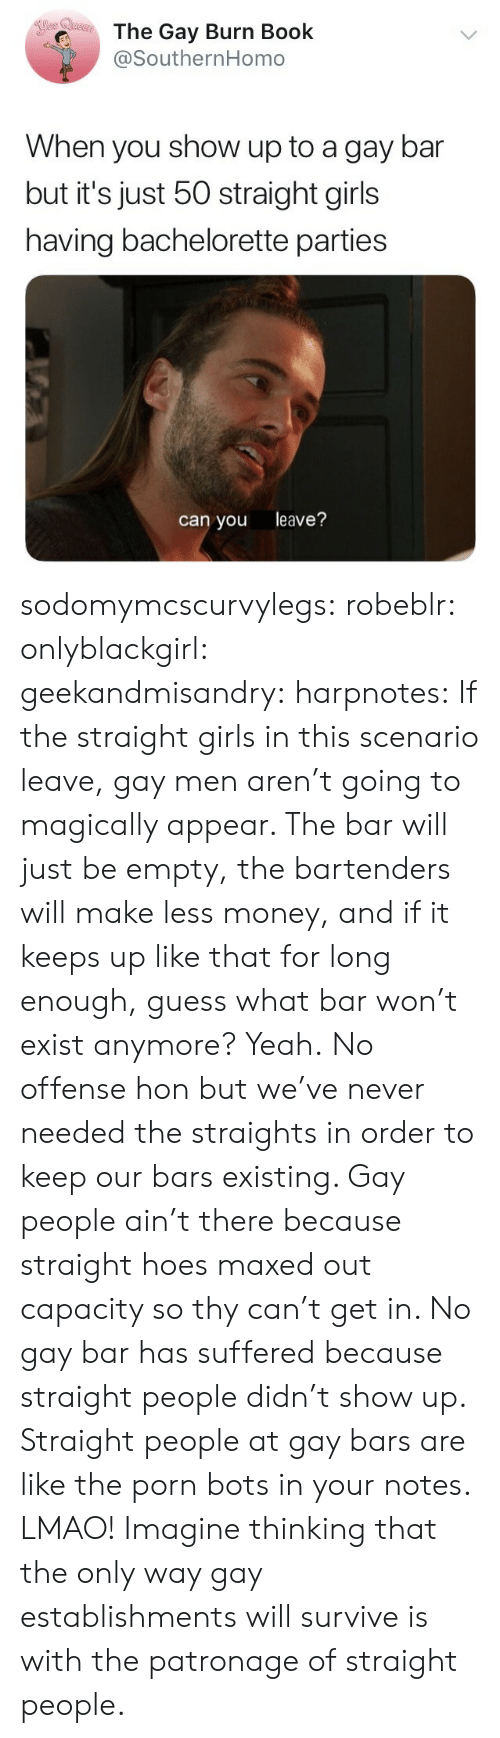 Keep Our: The Gay Burn Book  @SouthernHomo  When you show up to a gay bar  but it's just 50 straight girls  having bachelorette parties  can you leave? sodomymcscurvylegs:  robeblr:  onlyblackgirl:   geekandmisandry:   harpnotes:  If the straight girls in this scenario leave, gay men aren't going to magically appear. The bar will just be empty, the bartenders will make less money, and if it keeps up like that for long enough, guess what bar won't exist anymore? Yeah.  No offense hon but we've never needed the straights in order to keep our bars existing.    Gay people ain't there because straight hoes maxed out capacity so thy can't get in. No gay bar has suffered because straight people didn't show up.    Straight people at gay bars are like the porn bots in your notes.   LMAO! Imagine thinking that the only way gay establishments will survive is with the patronage of straight people.